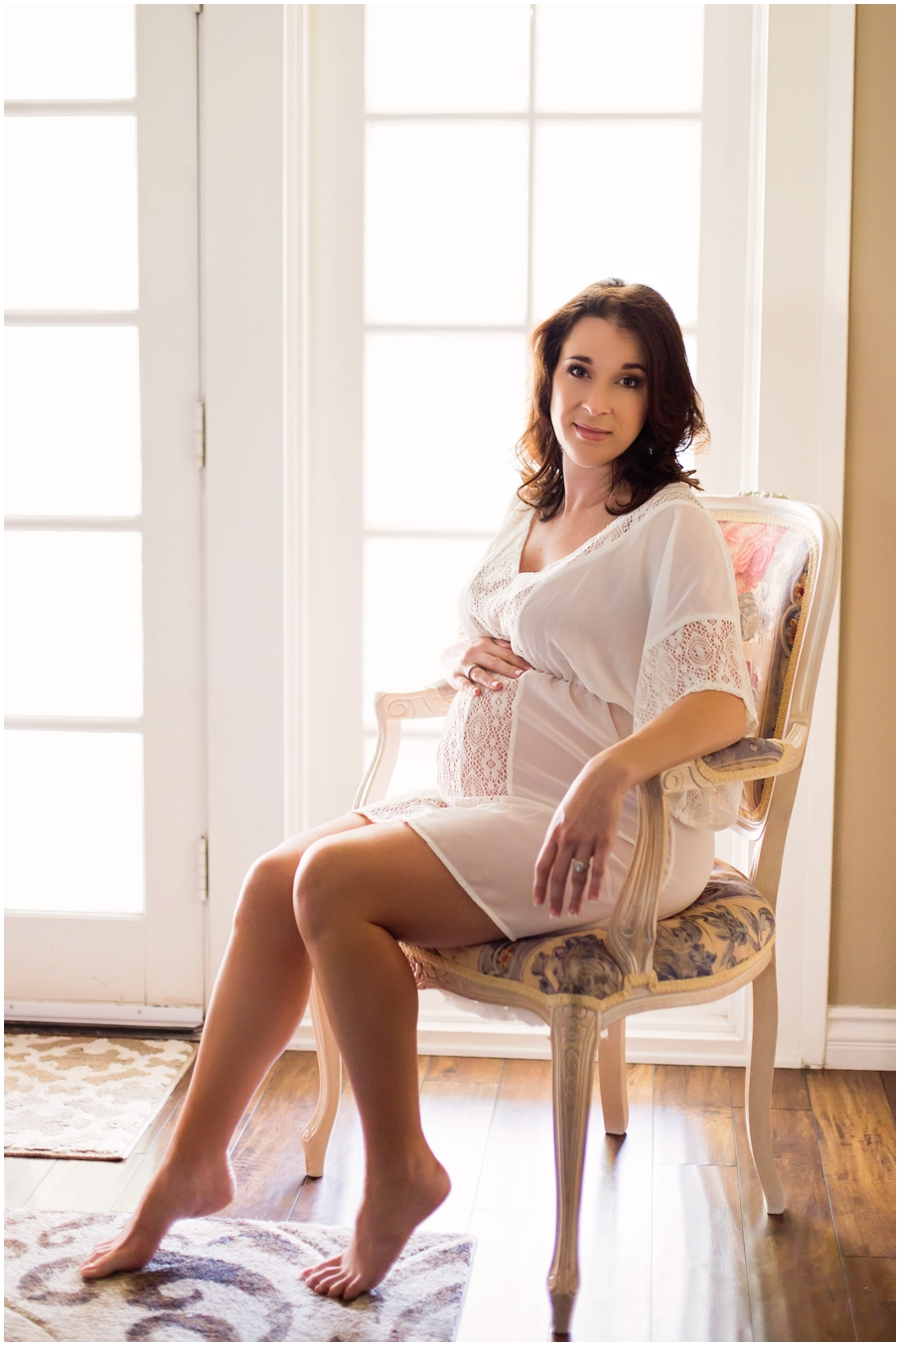 Intimate Maternity Portraits at Home by Just Maggie Photography -- Los Angeles Maternity and Newborn Photographer